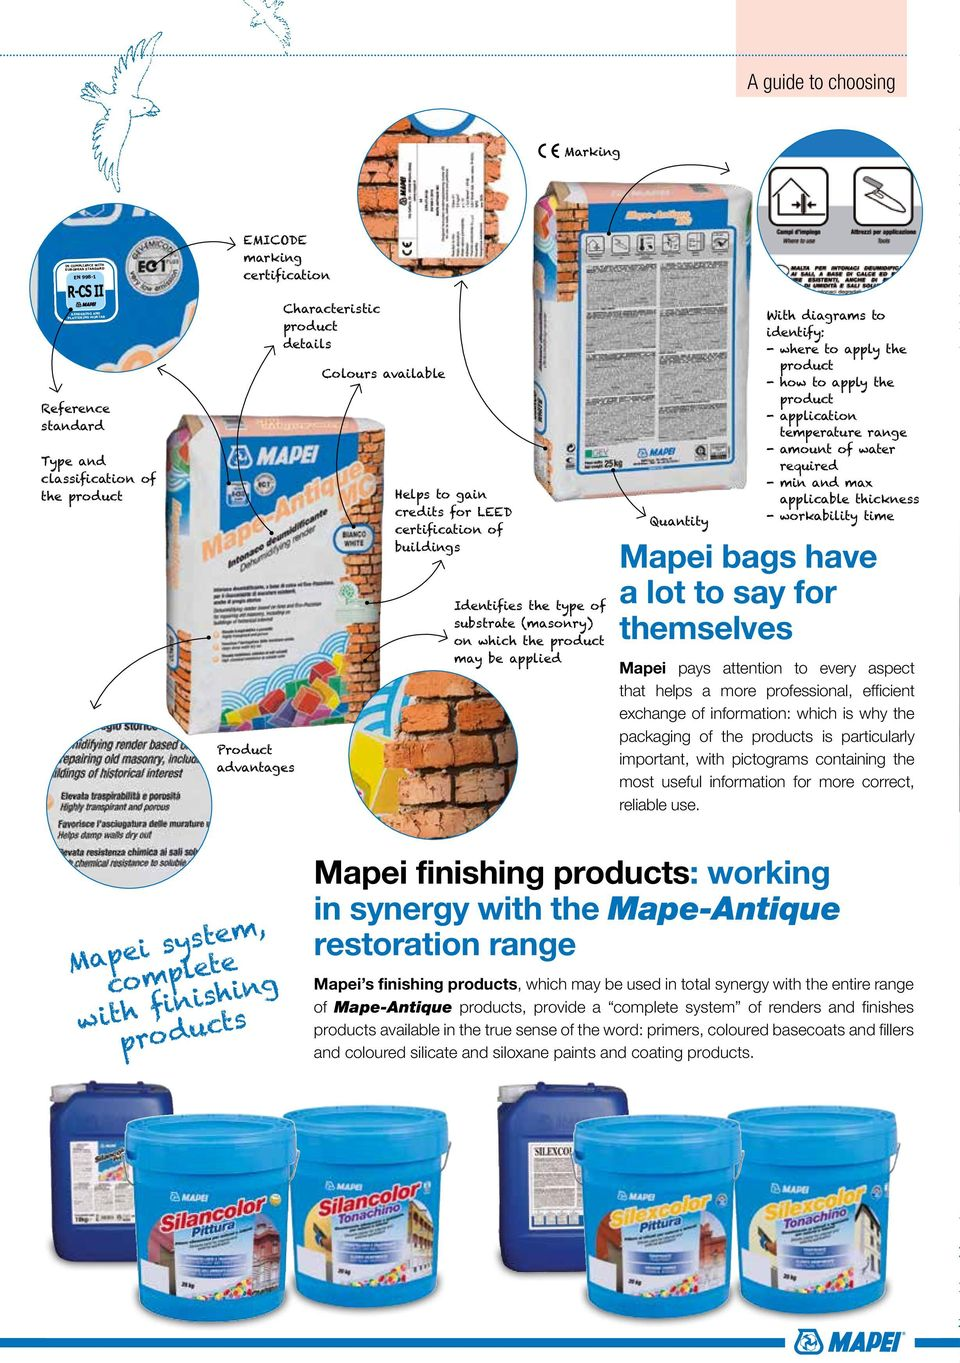 the product - how to apply the product - application temperature range - amount of water required - min and max applicable thickness - workability time Mapei bags have a lot to say for themselves